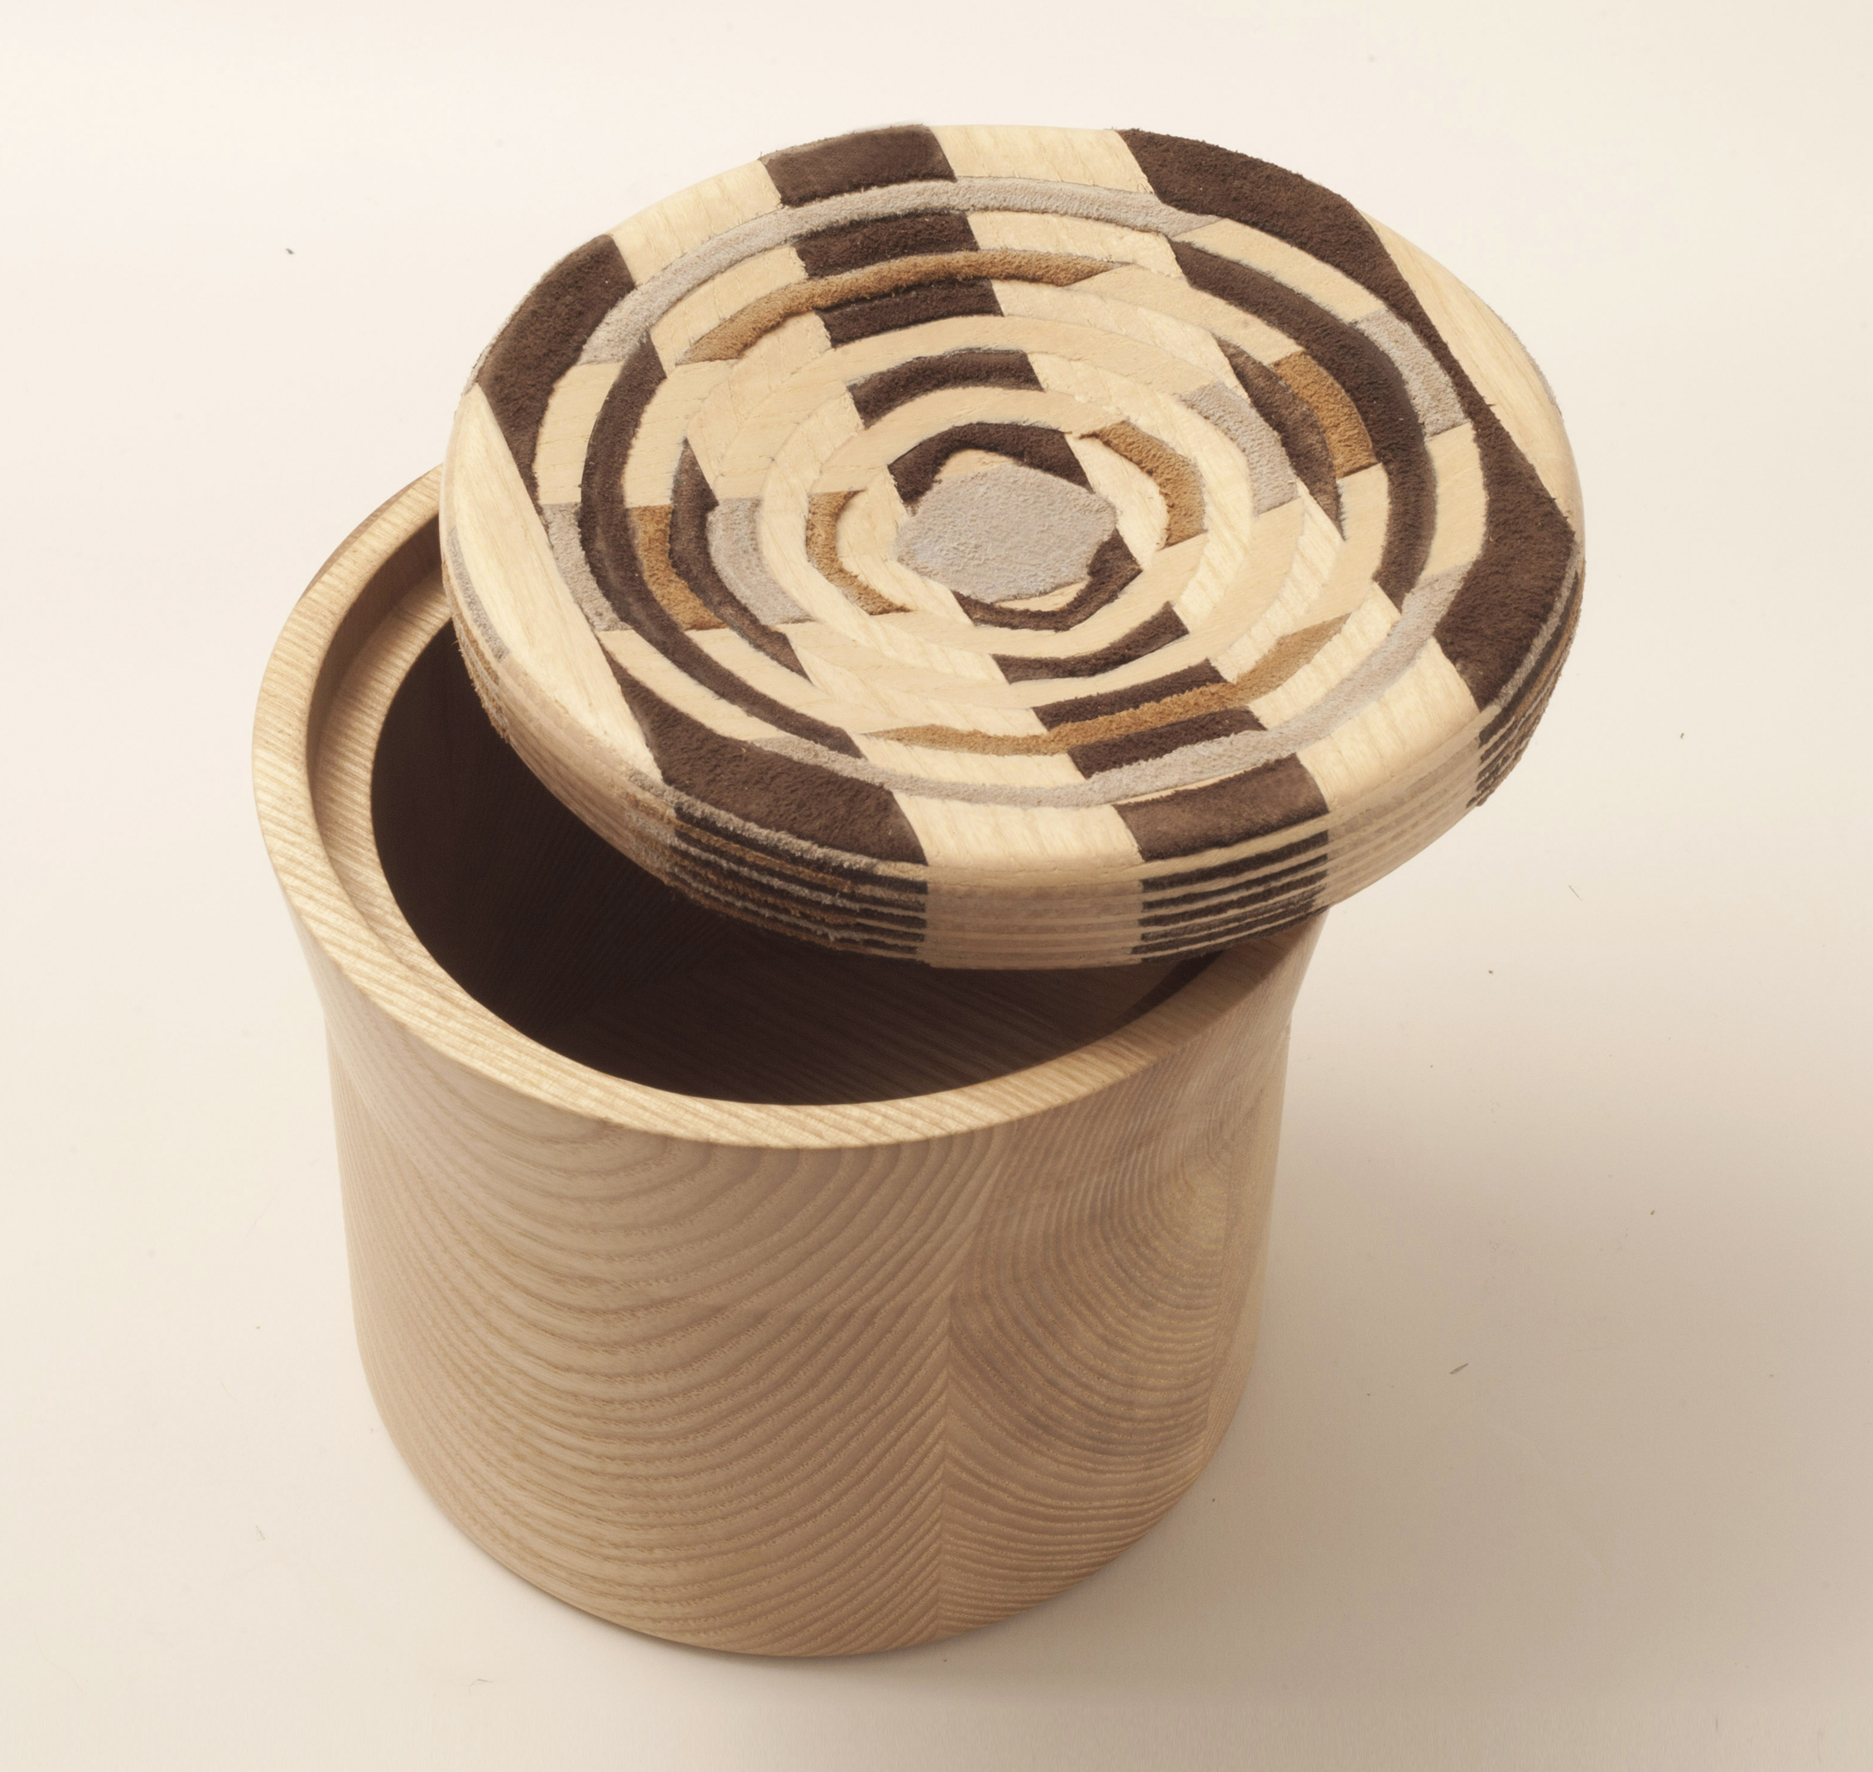 Cad Weaving Jar - <p>CAD weaving is a new material that brings a twist to traditional weaving techniques. It is made by identical pieces of leather and veneer that glued together in a crisscross manner to form a block. The block is then programmed in 3D computer software to find the right pattern and shape and cut in a CNC machine to create the curved surface, revealing a different pattern in each cut. The use of the new semi fabric material on the lid of the wooden jars takes inspiration from classic kitchen jars with patchwork fabric covers.</p>    Matter of Stuff